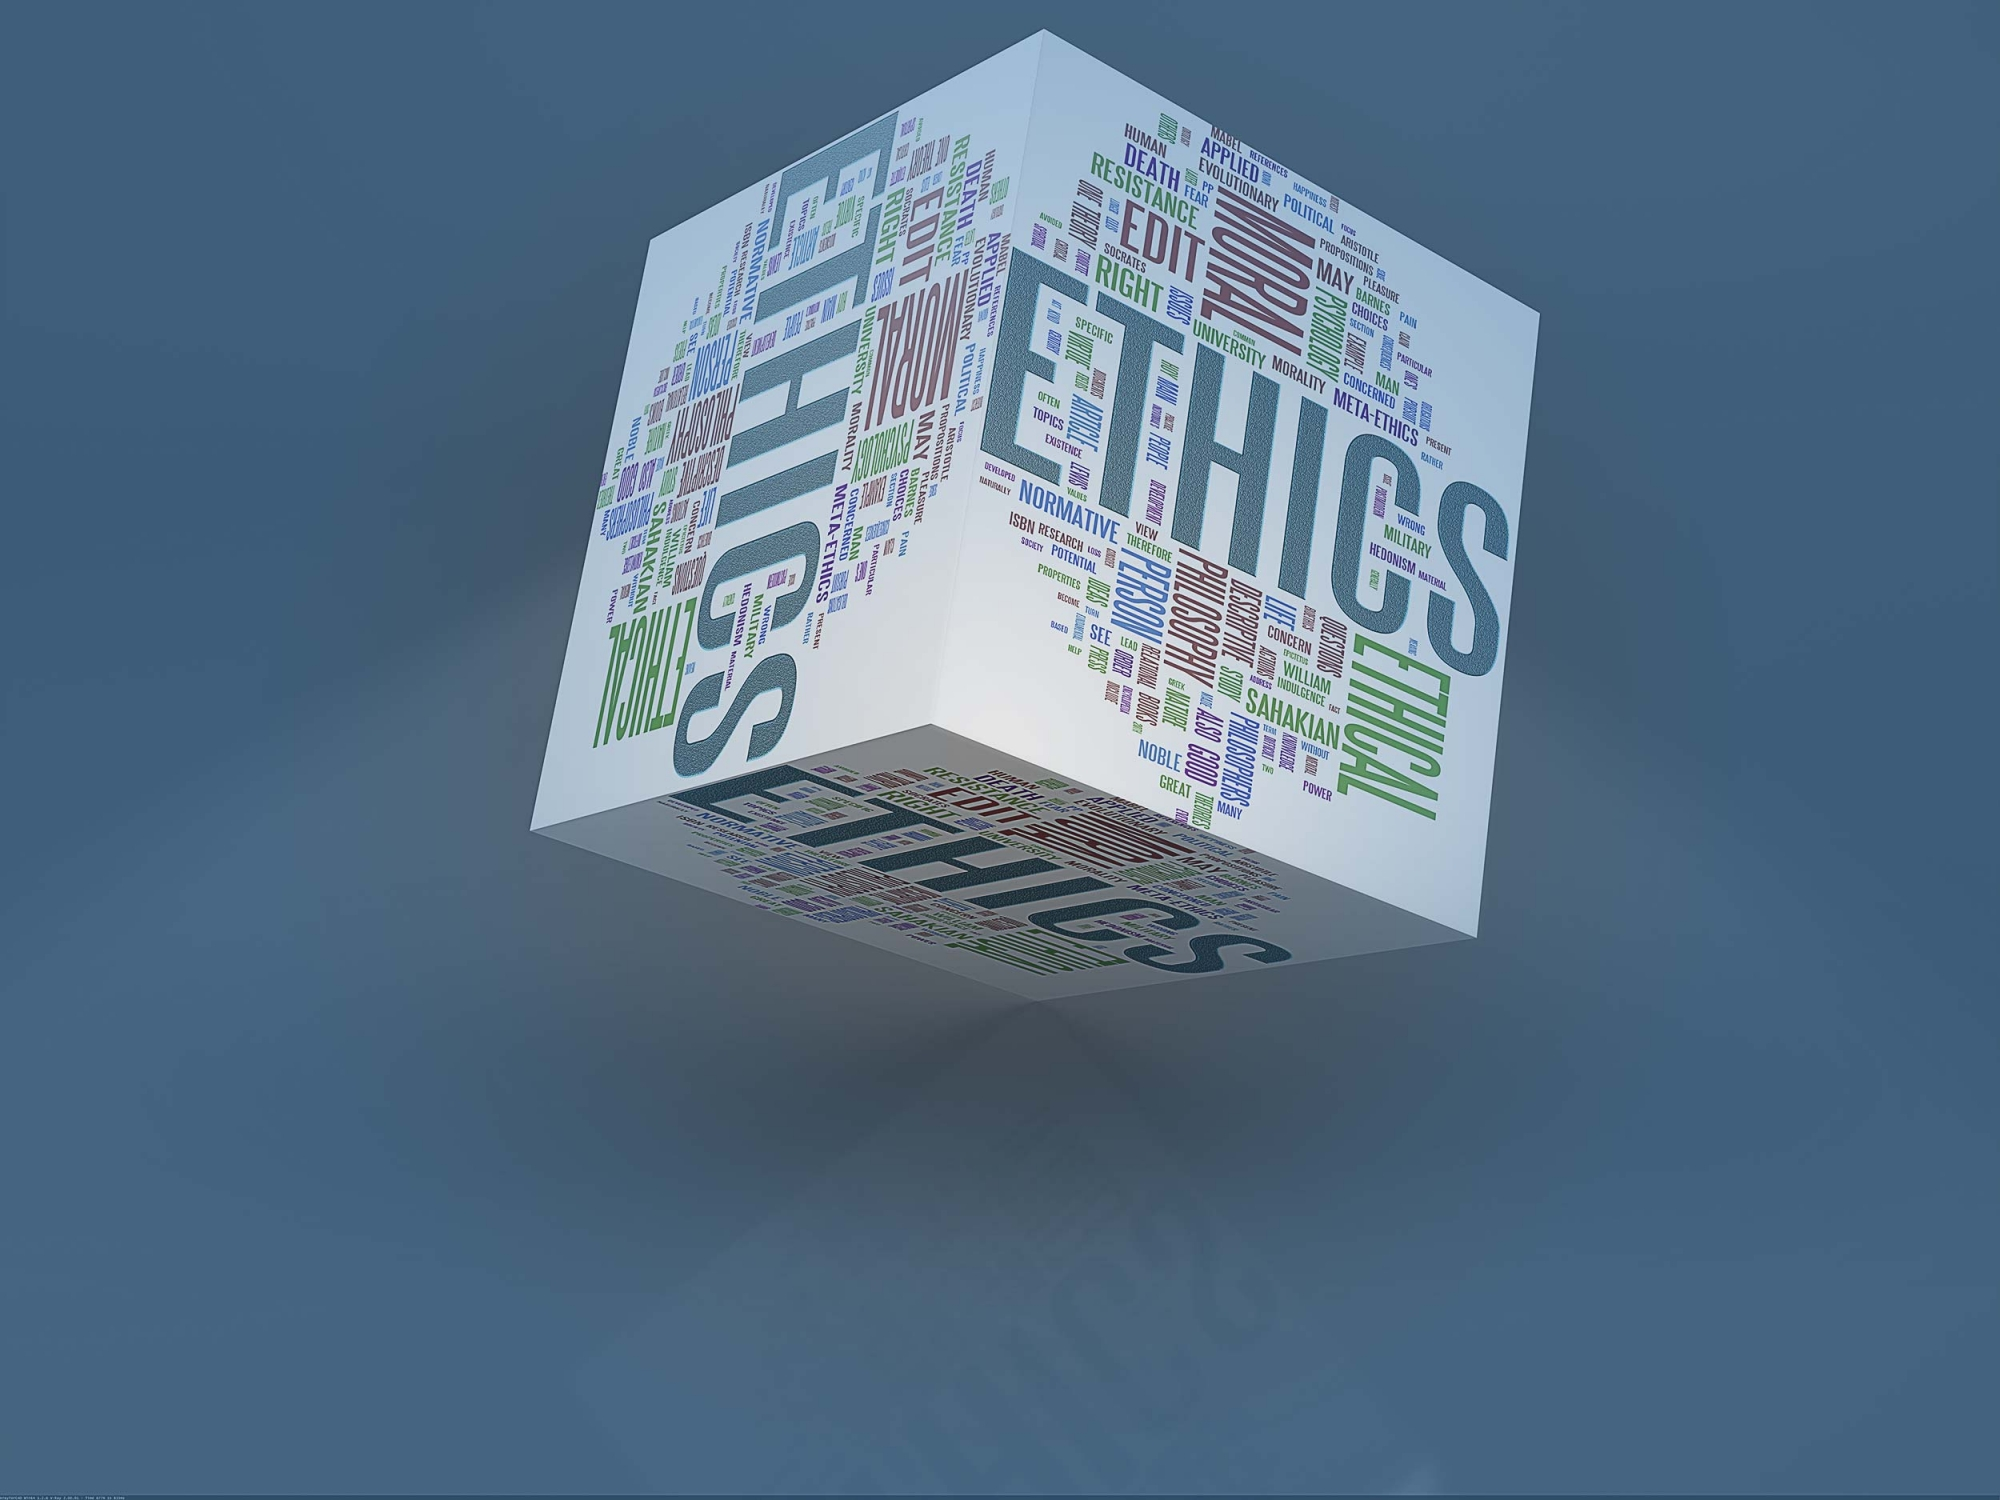 bbc ethics guide to moral and ethical issues ethical issues ethical issues definition of ethical issues by the